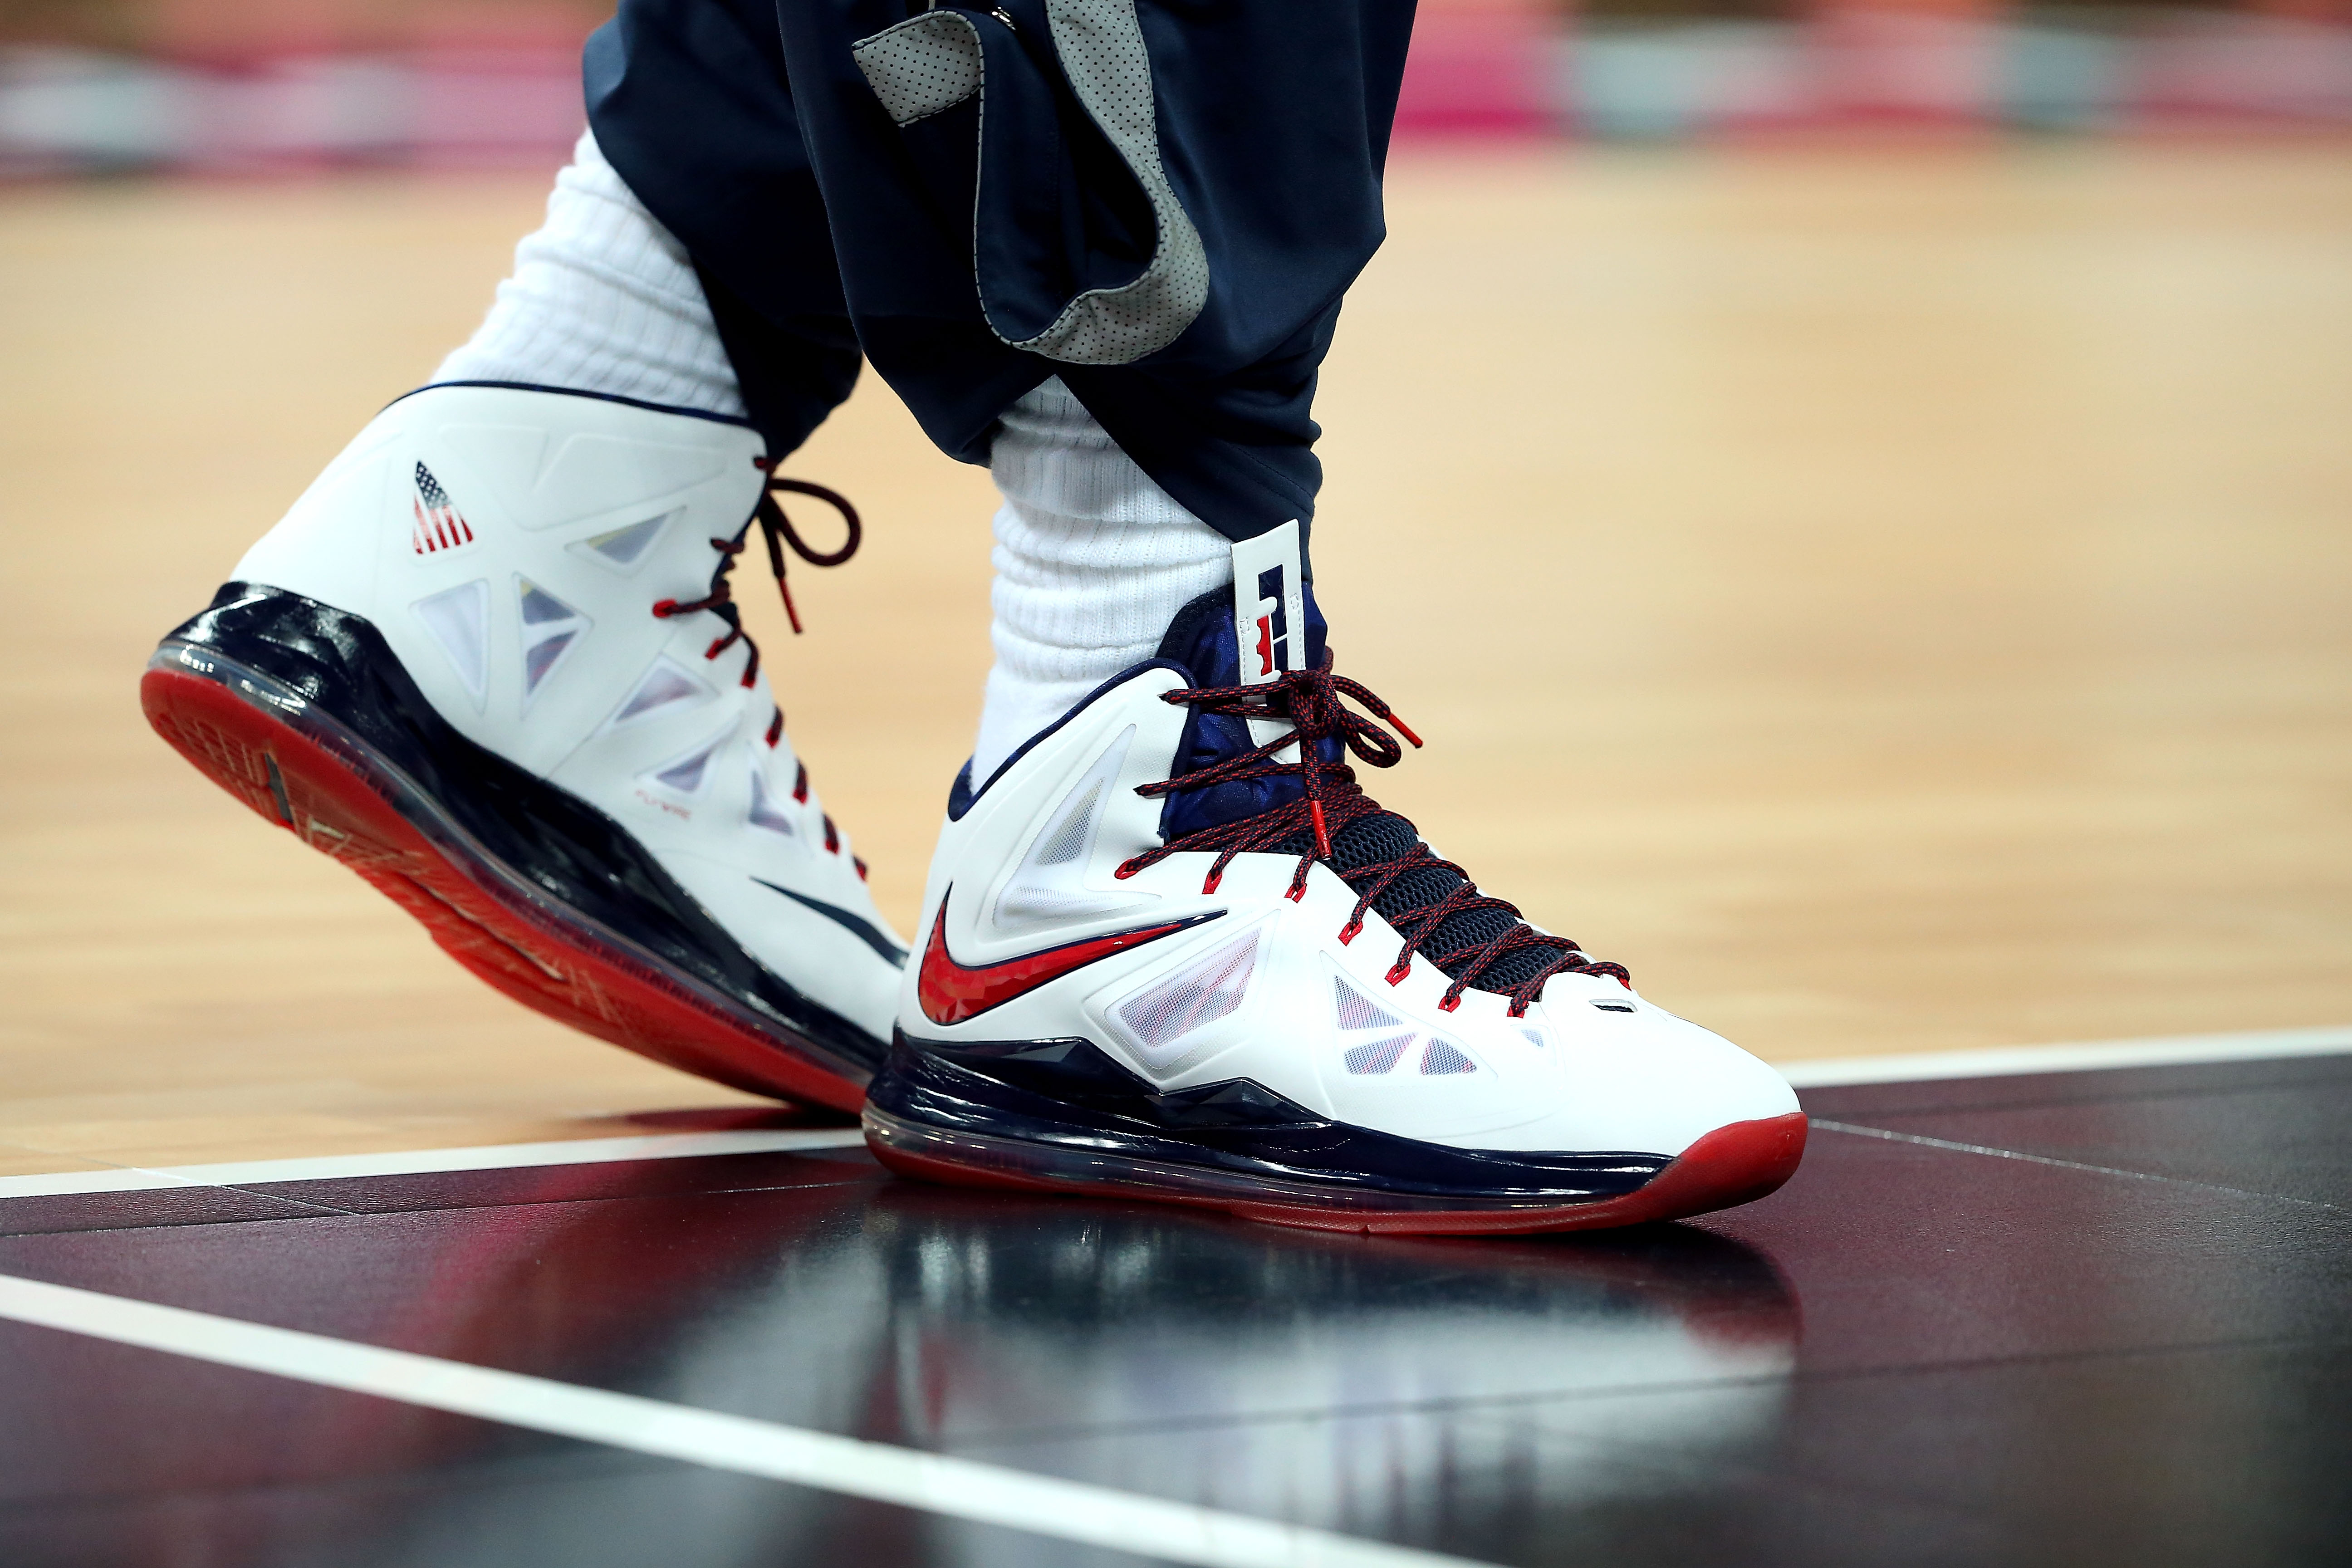 signature shoe during gold medal game